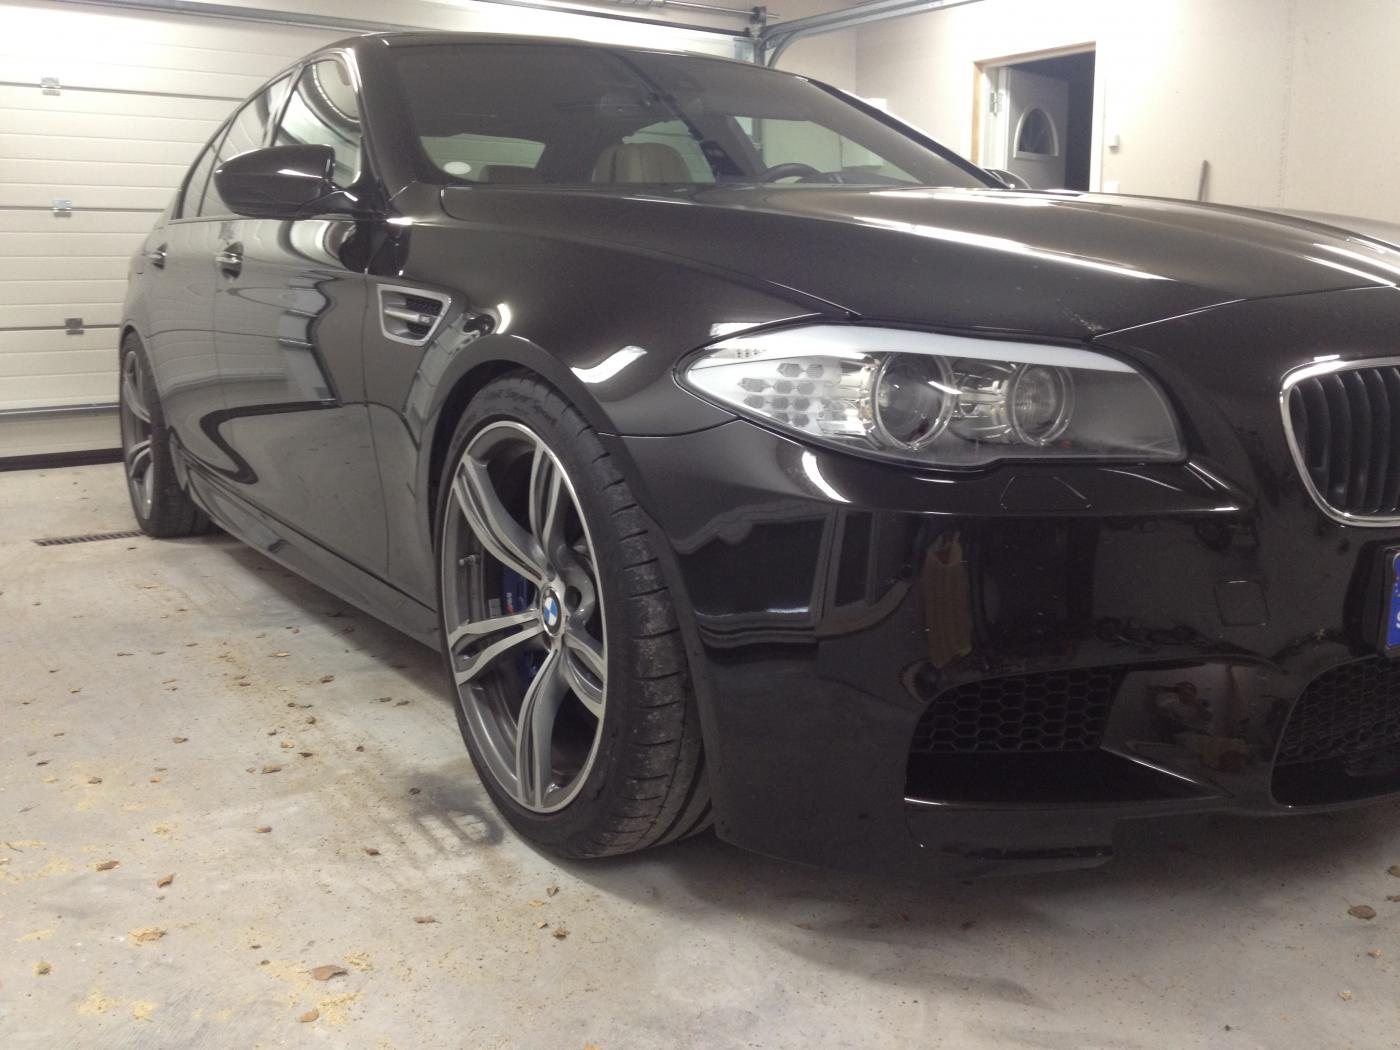 M5POST - BMW M5 Forum - View Single Post - Clunk sound ...